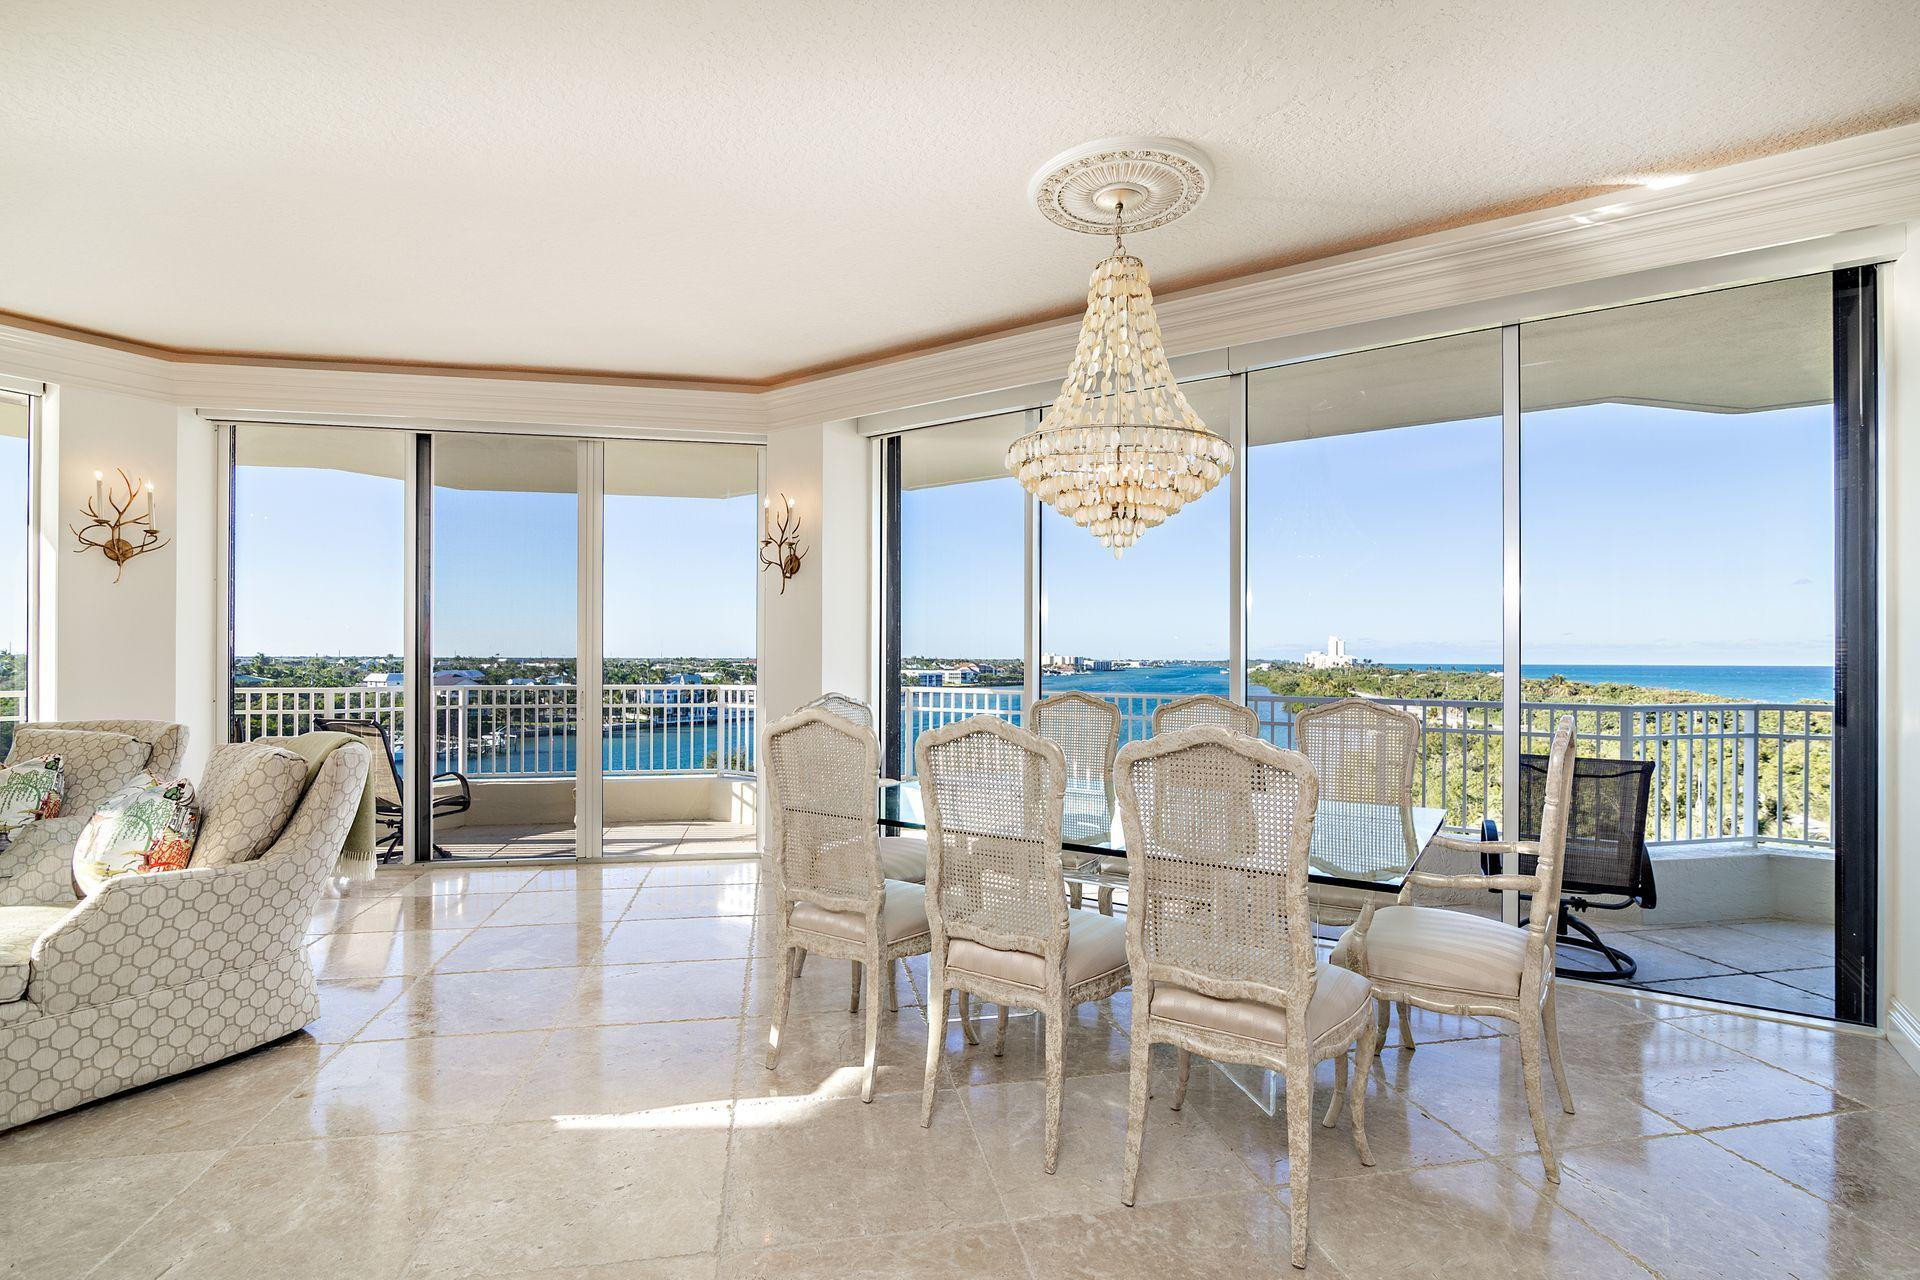 New Home for sale at 425 Beach Road in Tequesta